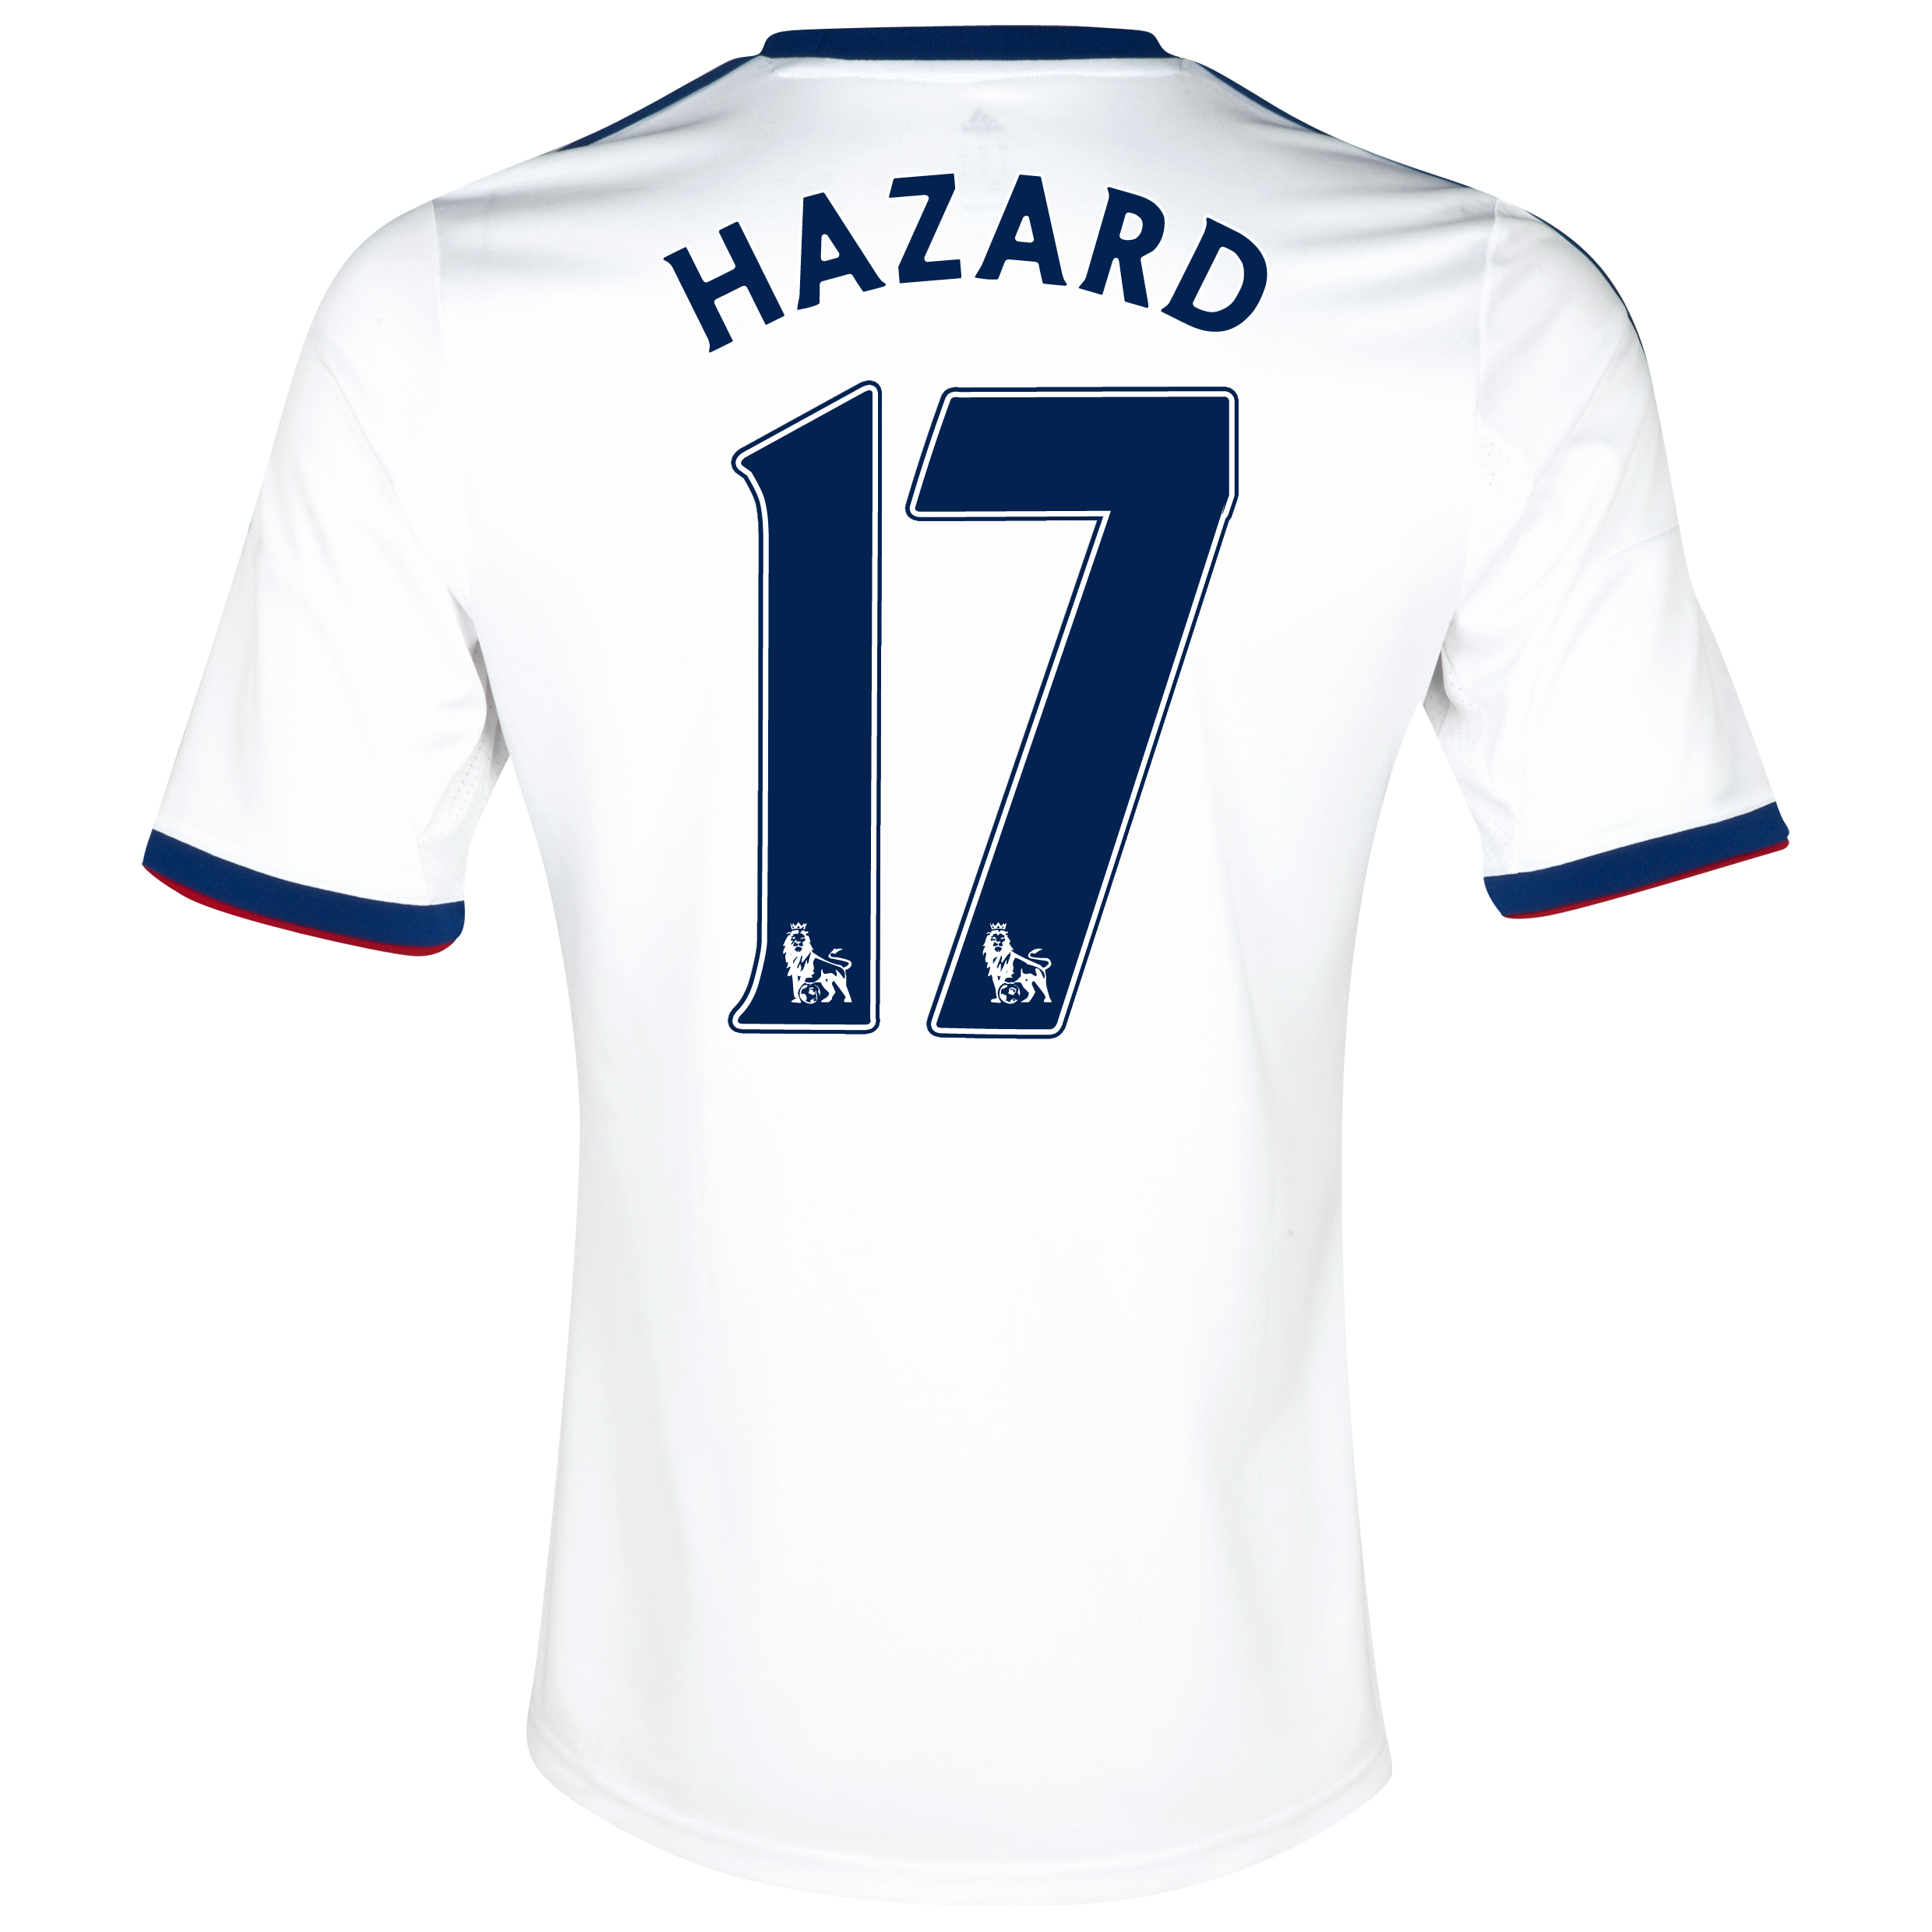 Chelsea Away Shirt 2013/14 with Hazard 17 printing